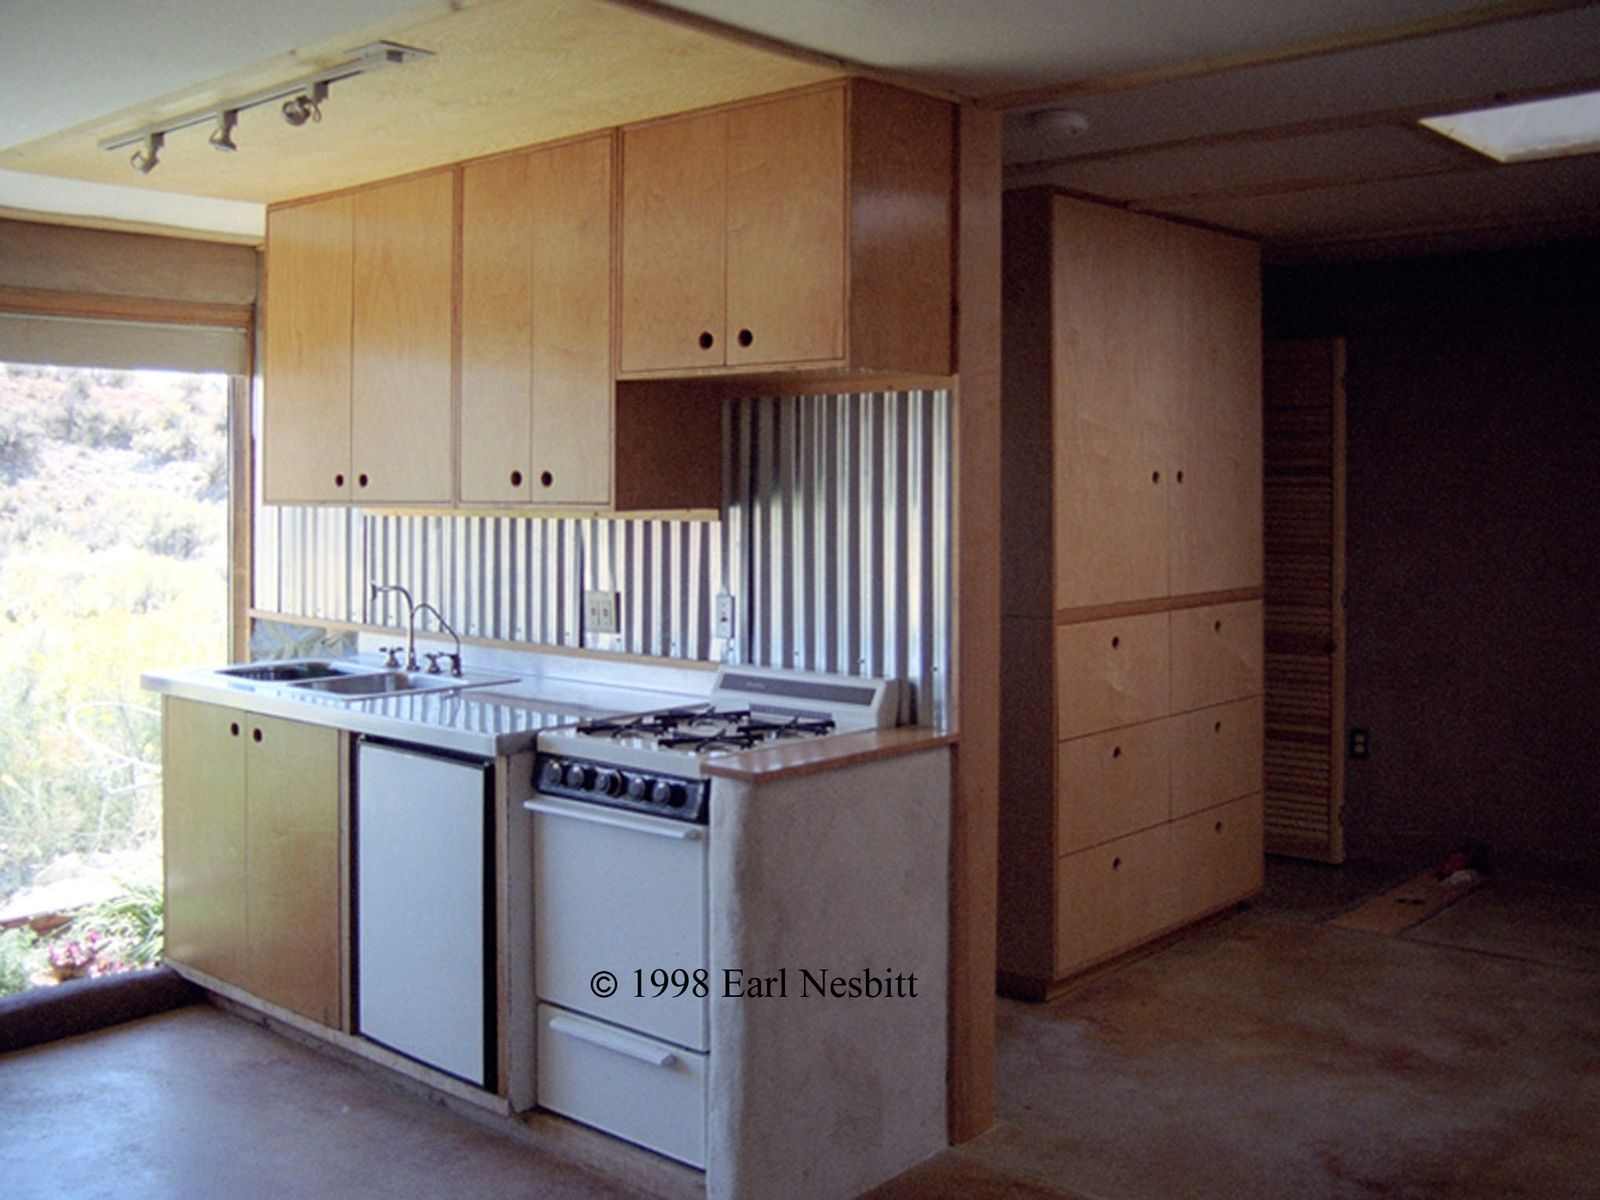 birch ply kitchen cabinets custom kitchen cabinets plywood birch by earl nesbitt 12297